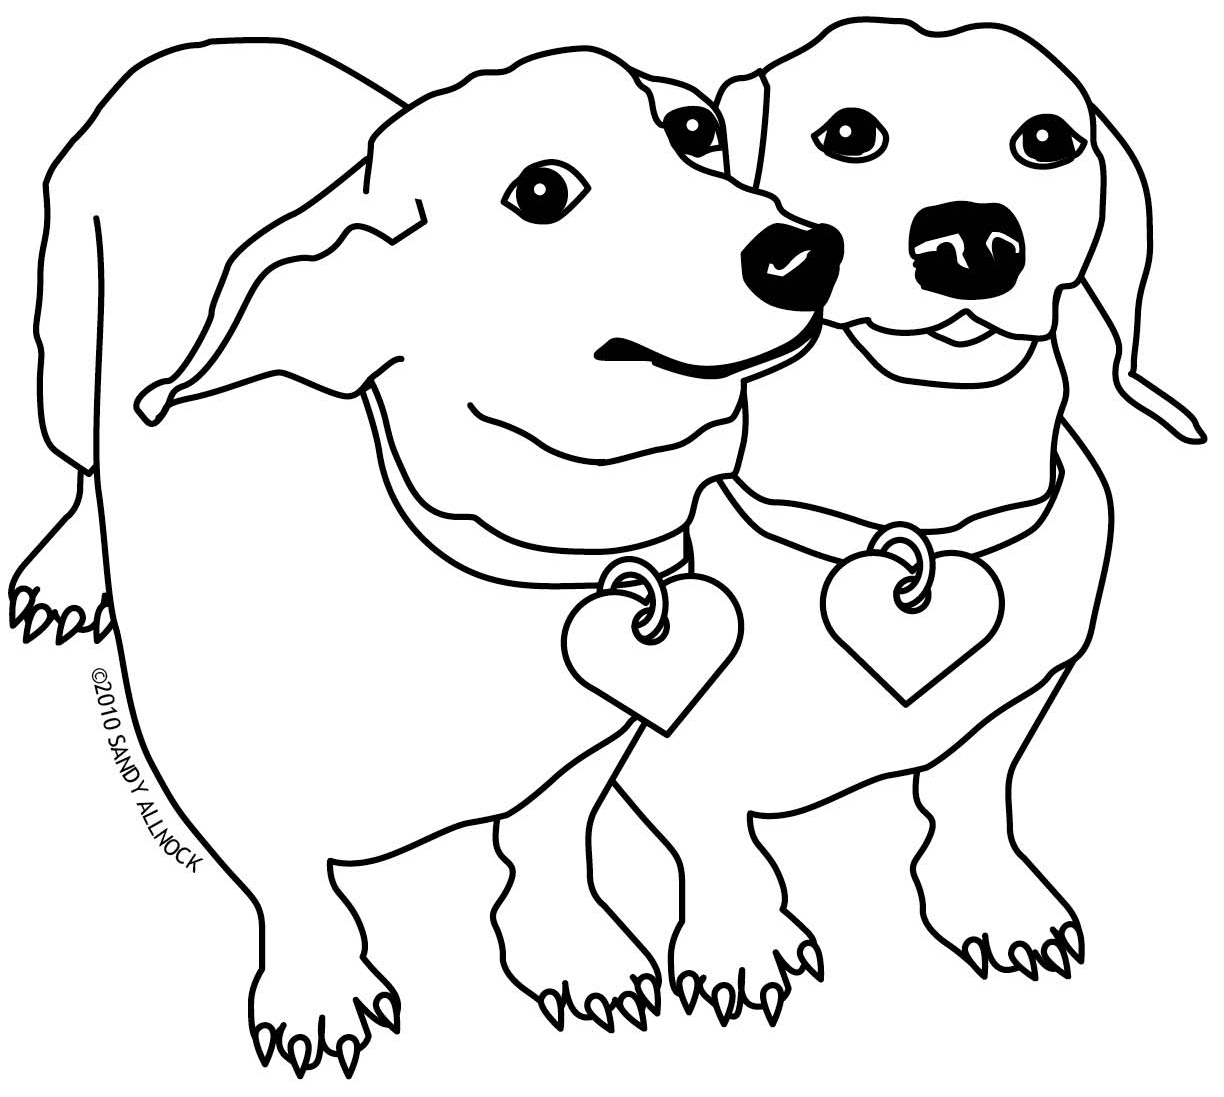 coloring pic of dog clifford the big red dog coloring pages at getcolorings dog coloring of pic